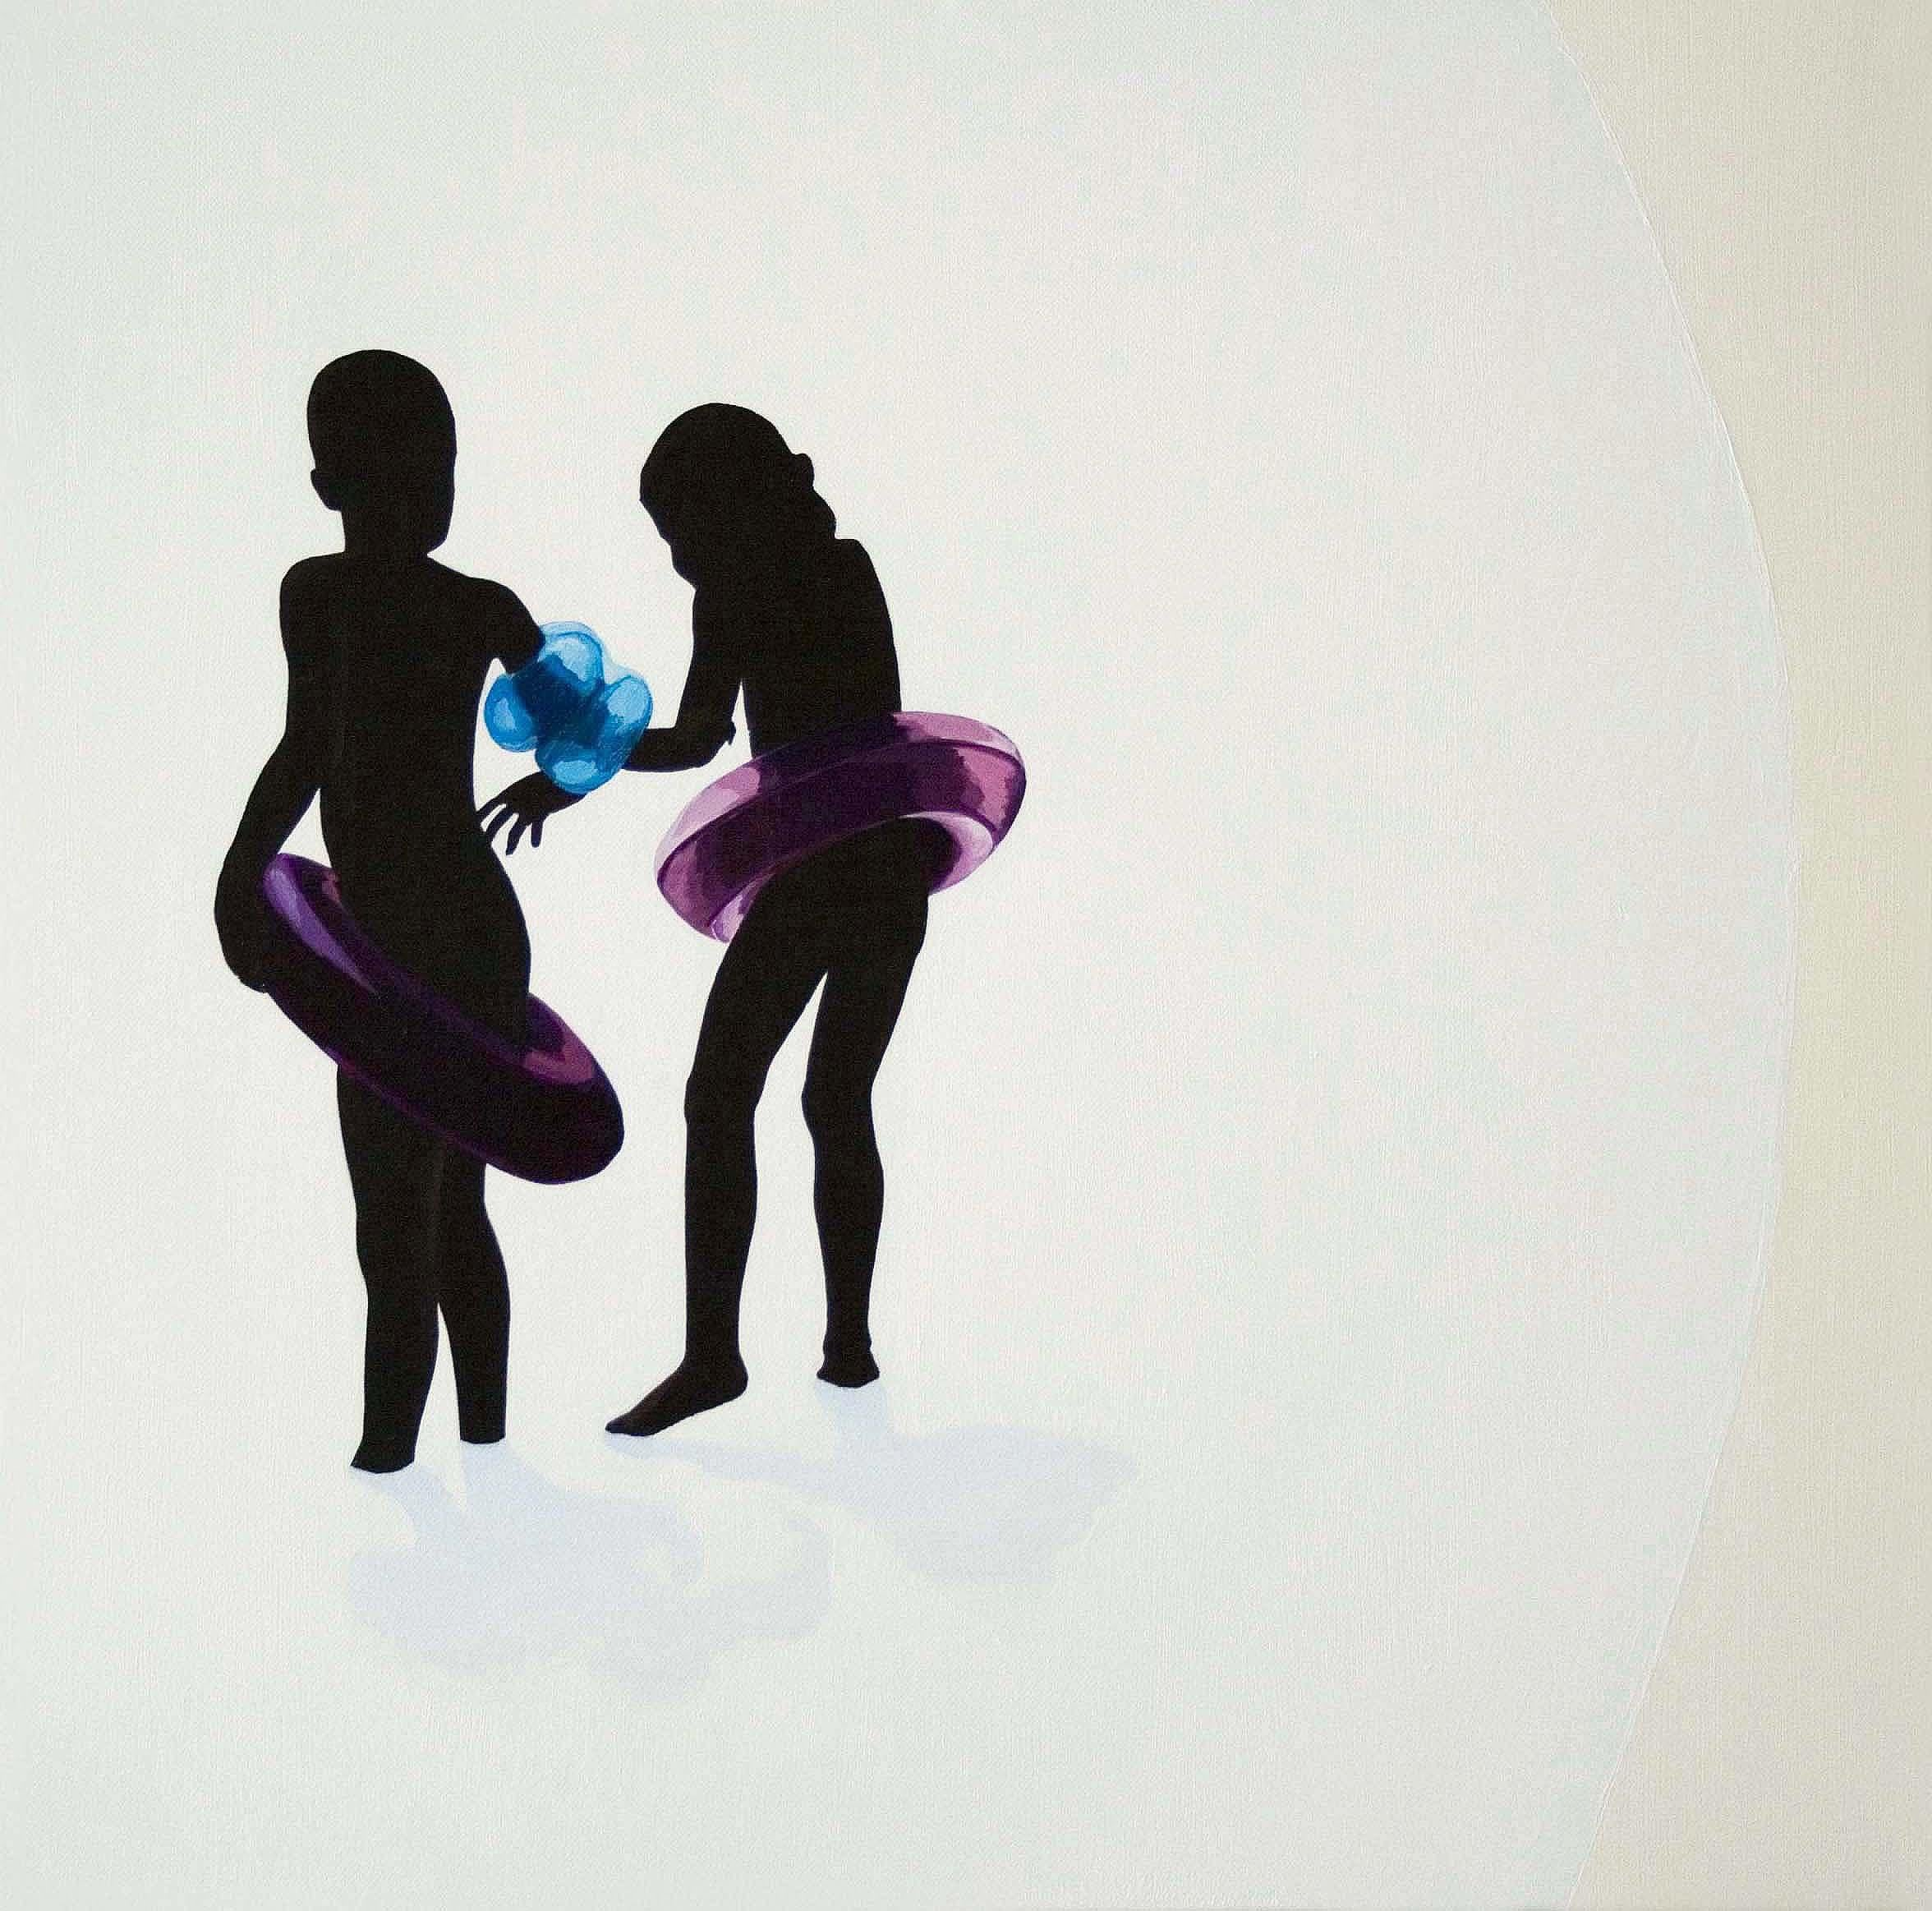 Gestures 20 -Contemporary Minimalistic Figurative Oil Painting, Realism, Beach